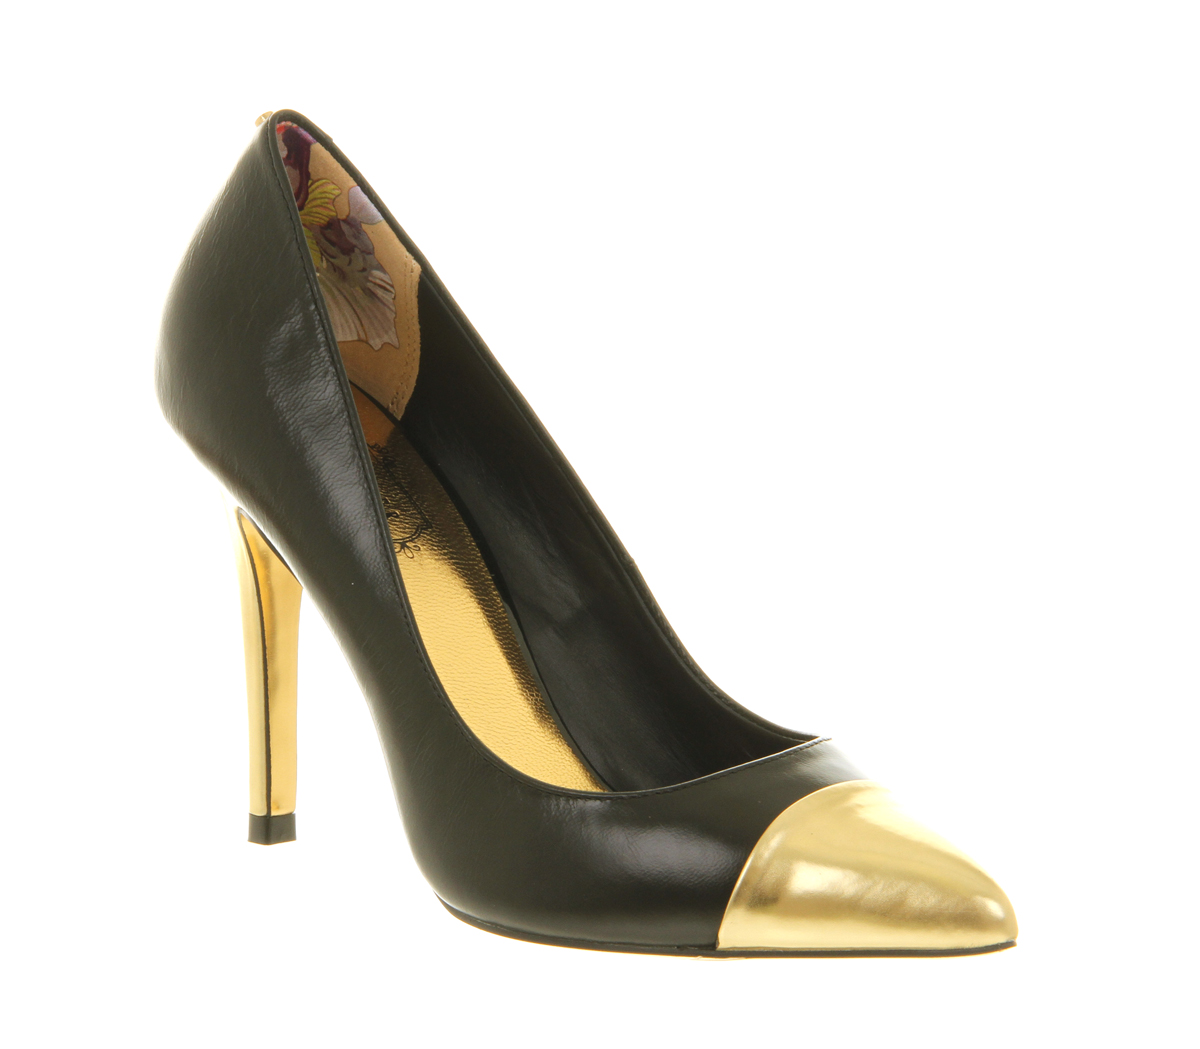 womens ted baker saysa high heel court shoe black gold metallic heels size 7 ebay. Black Bedroom Furniture Sets. Home Design Ideas